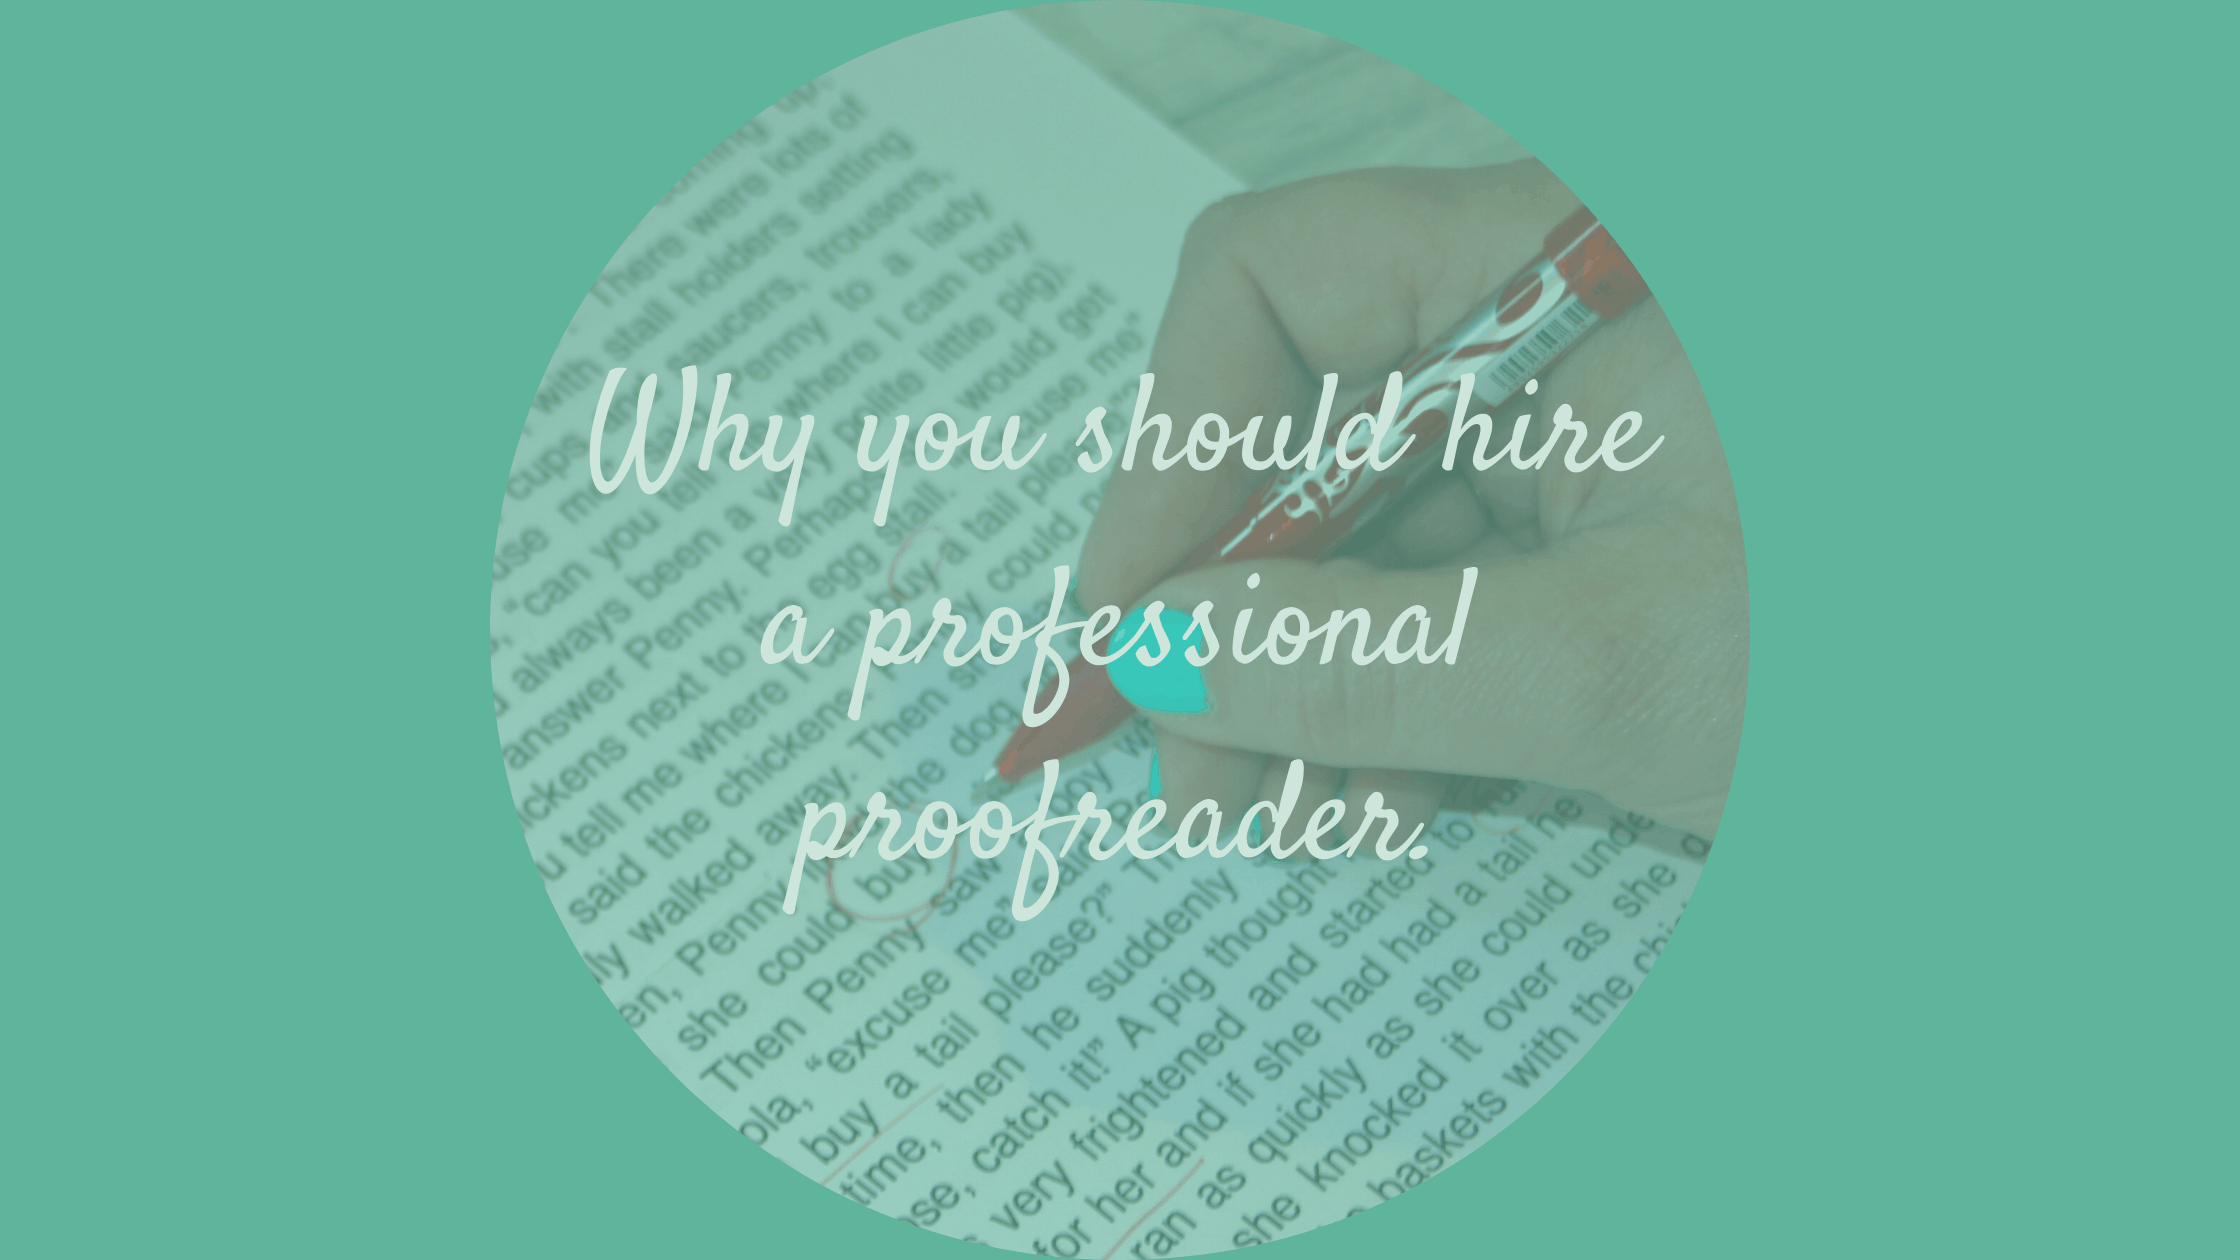 Why you should hire a professional proofreader.